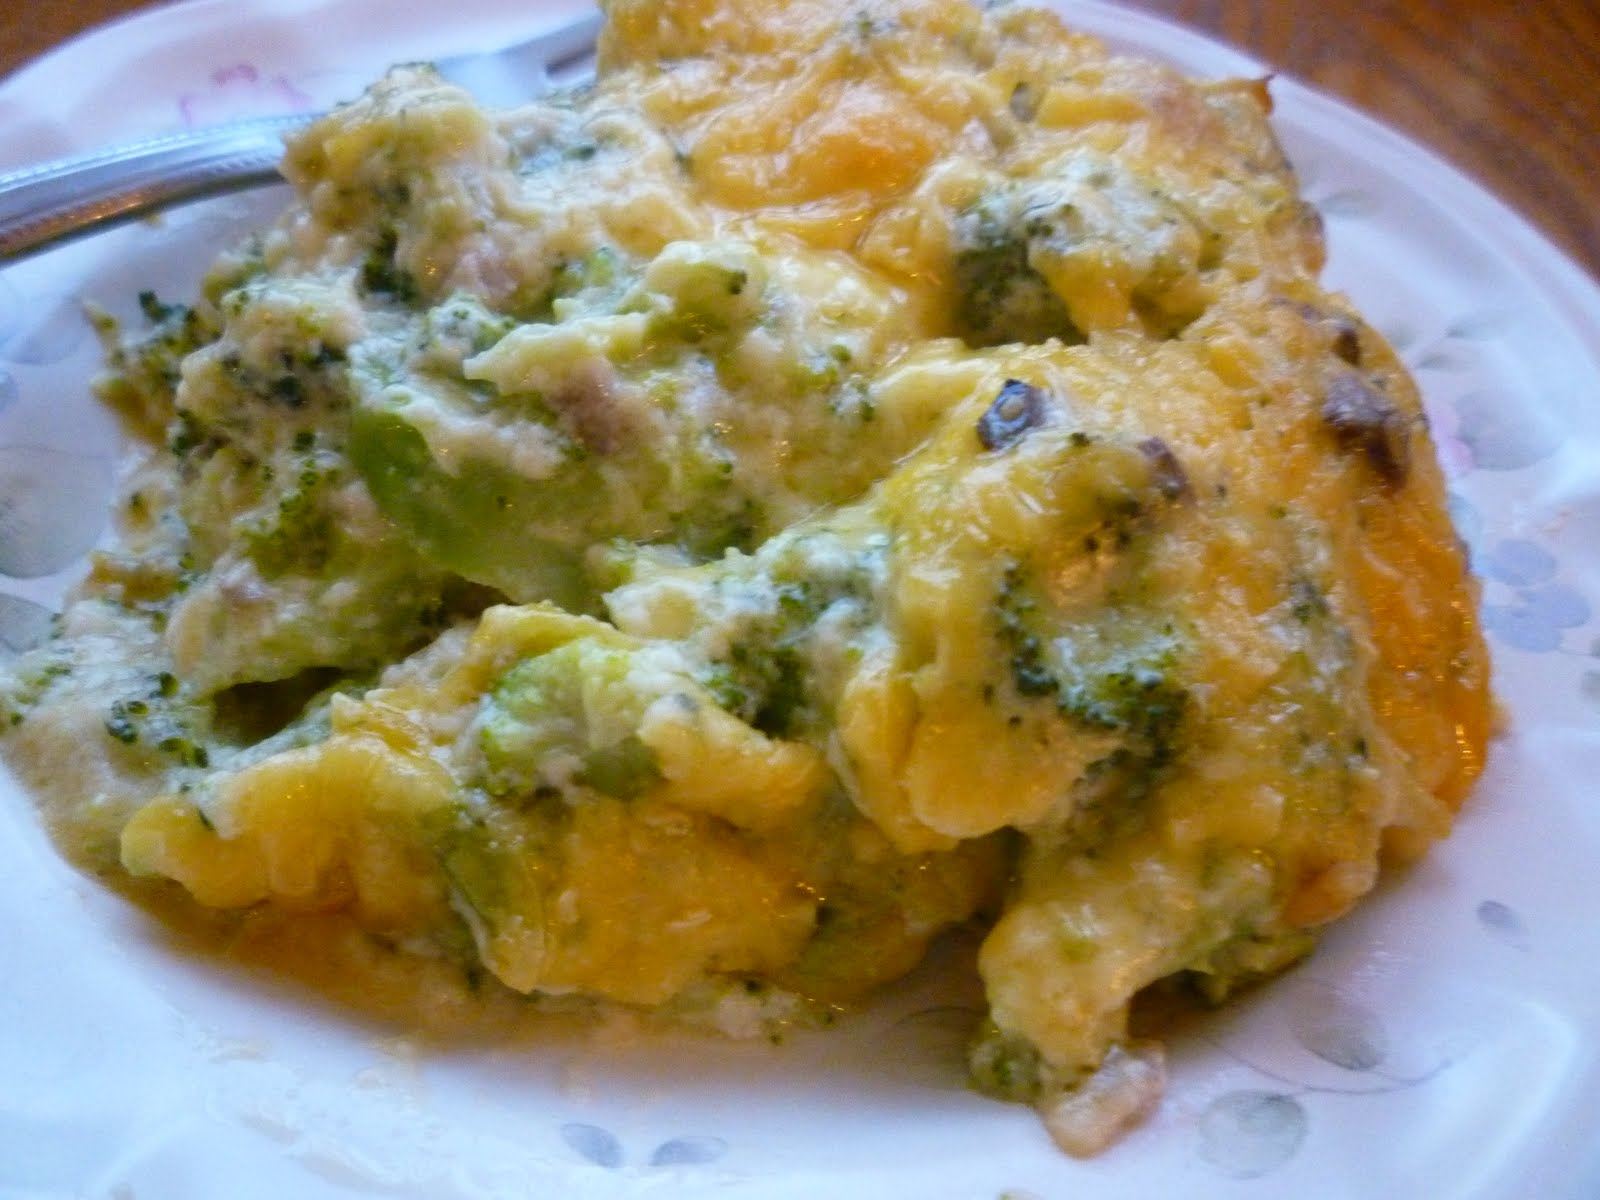 SimplEdibles: RAMEN BROCCOLI AND CHEESE CASSEROLE